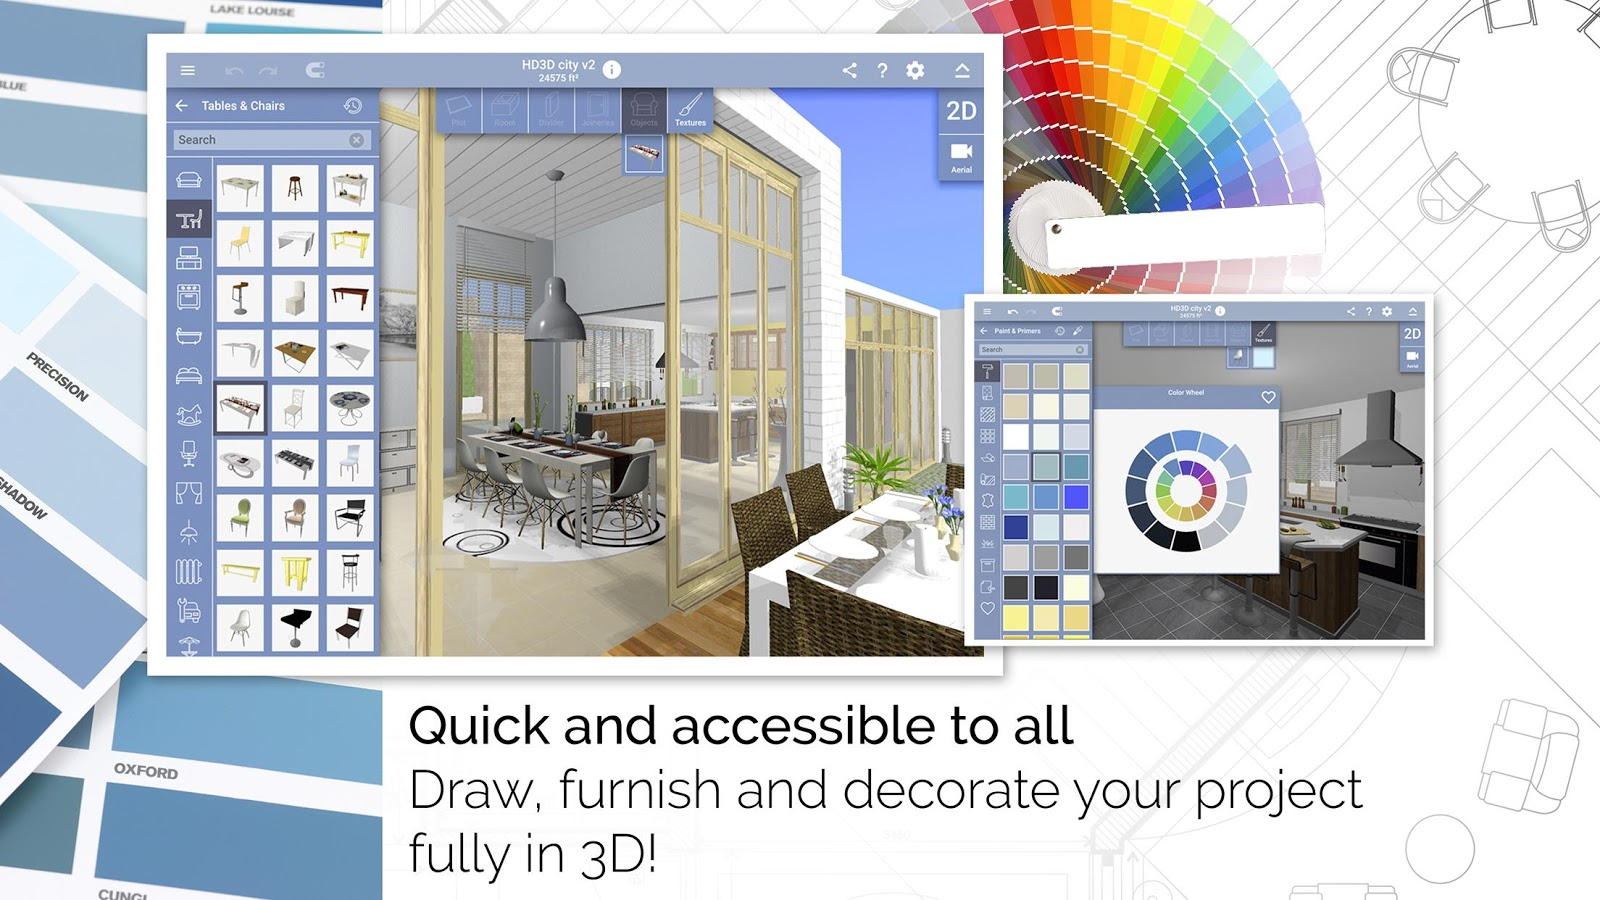 Home design 3d freemium android apps on google play for Ikea design app